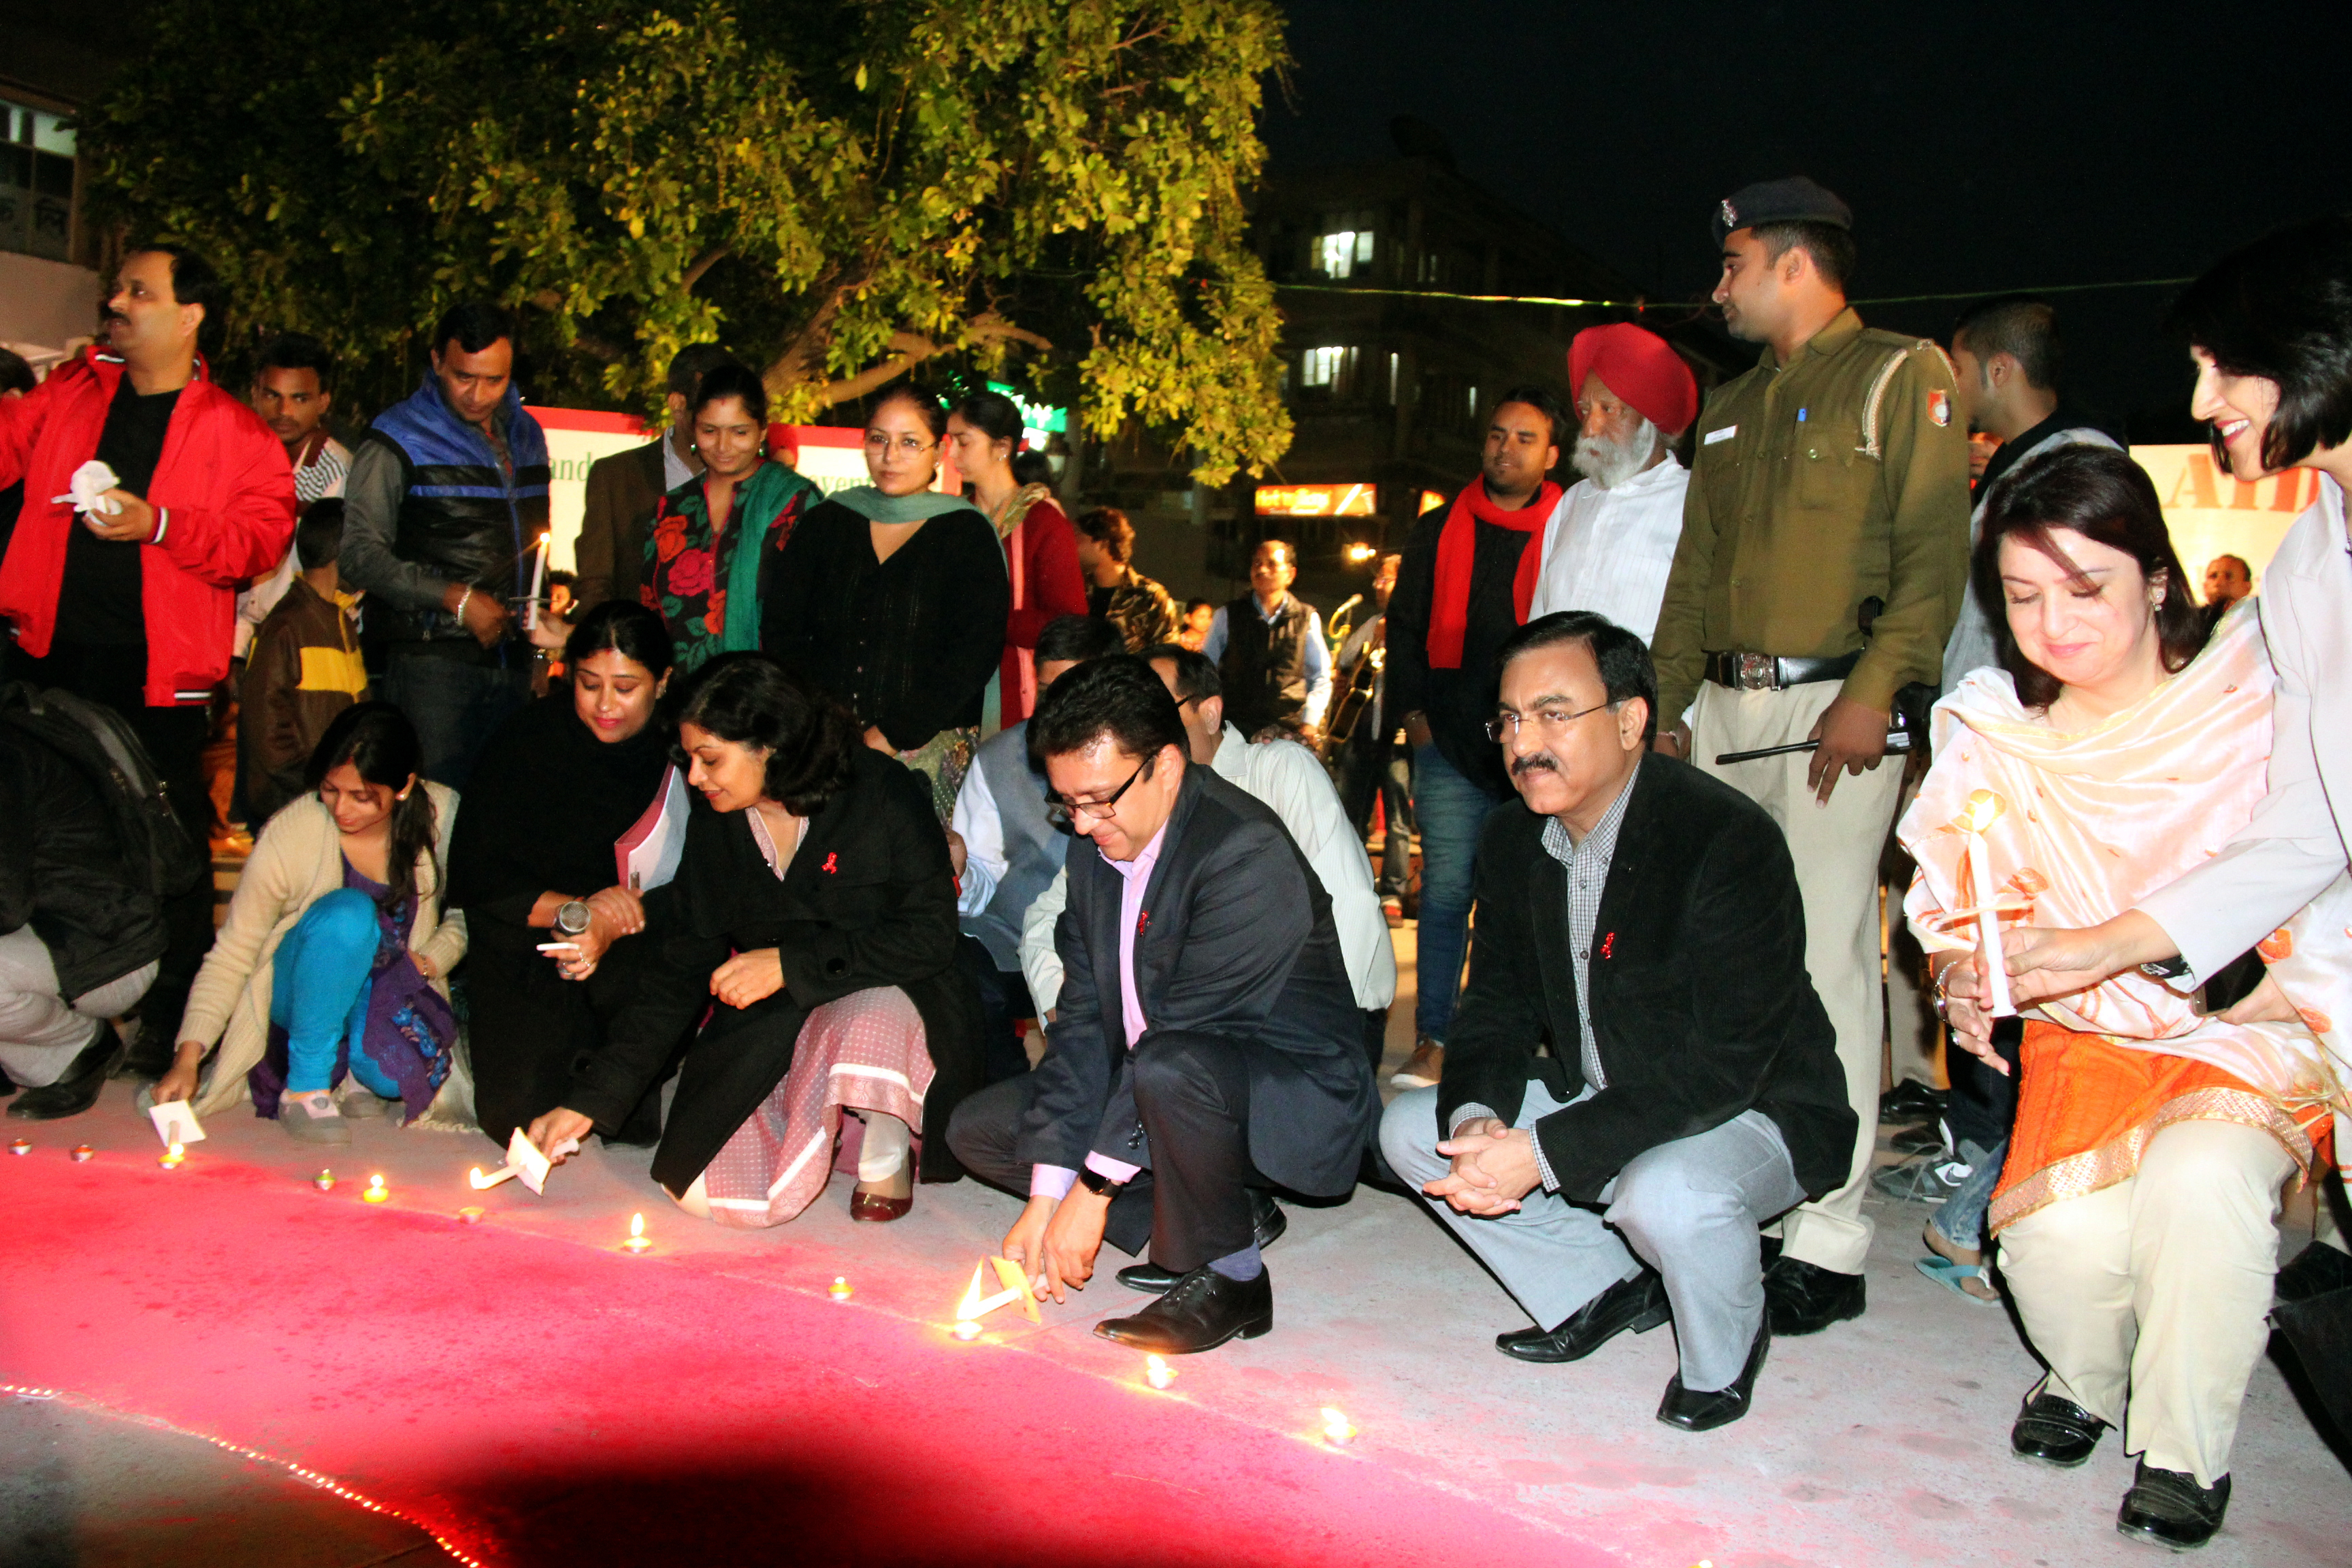 UT Home Secretary, Shri Anurag Agarwal  lighting the Candle at the inauguration of  World Aids day  Function at Plaza Sector 17  Chandigarh on Thursday December 1, 2016.